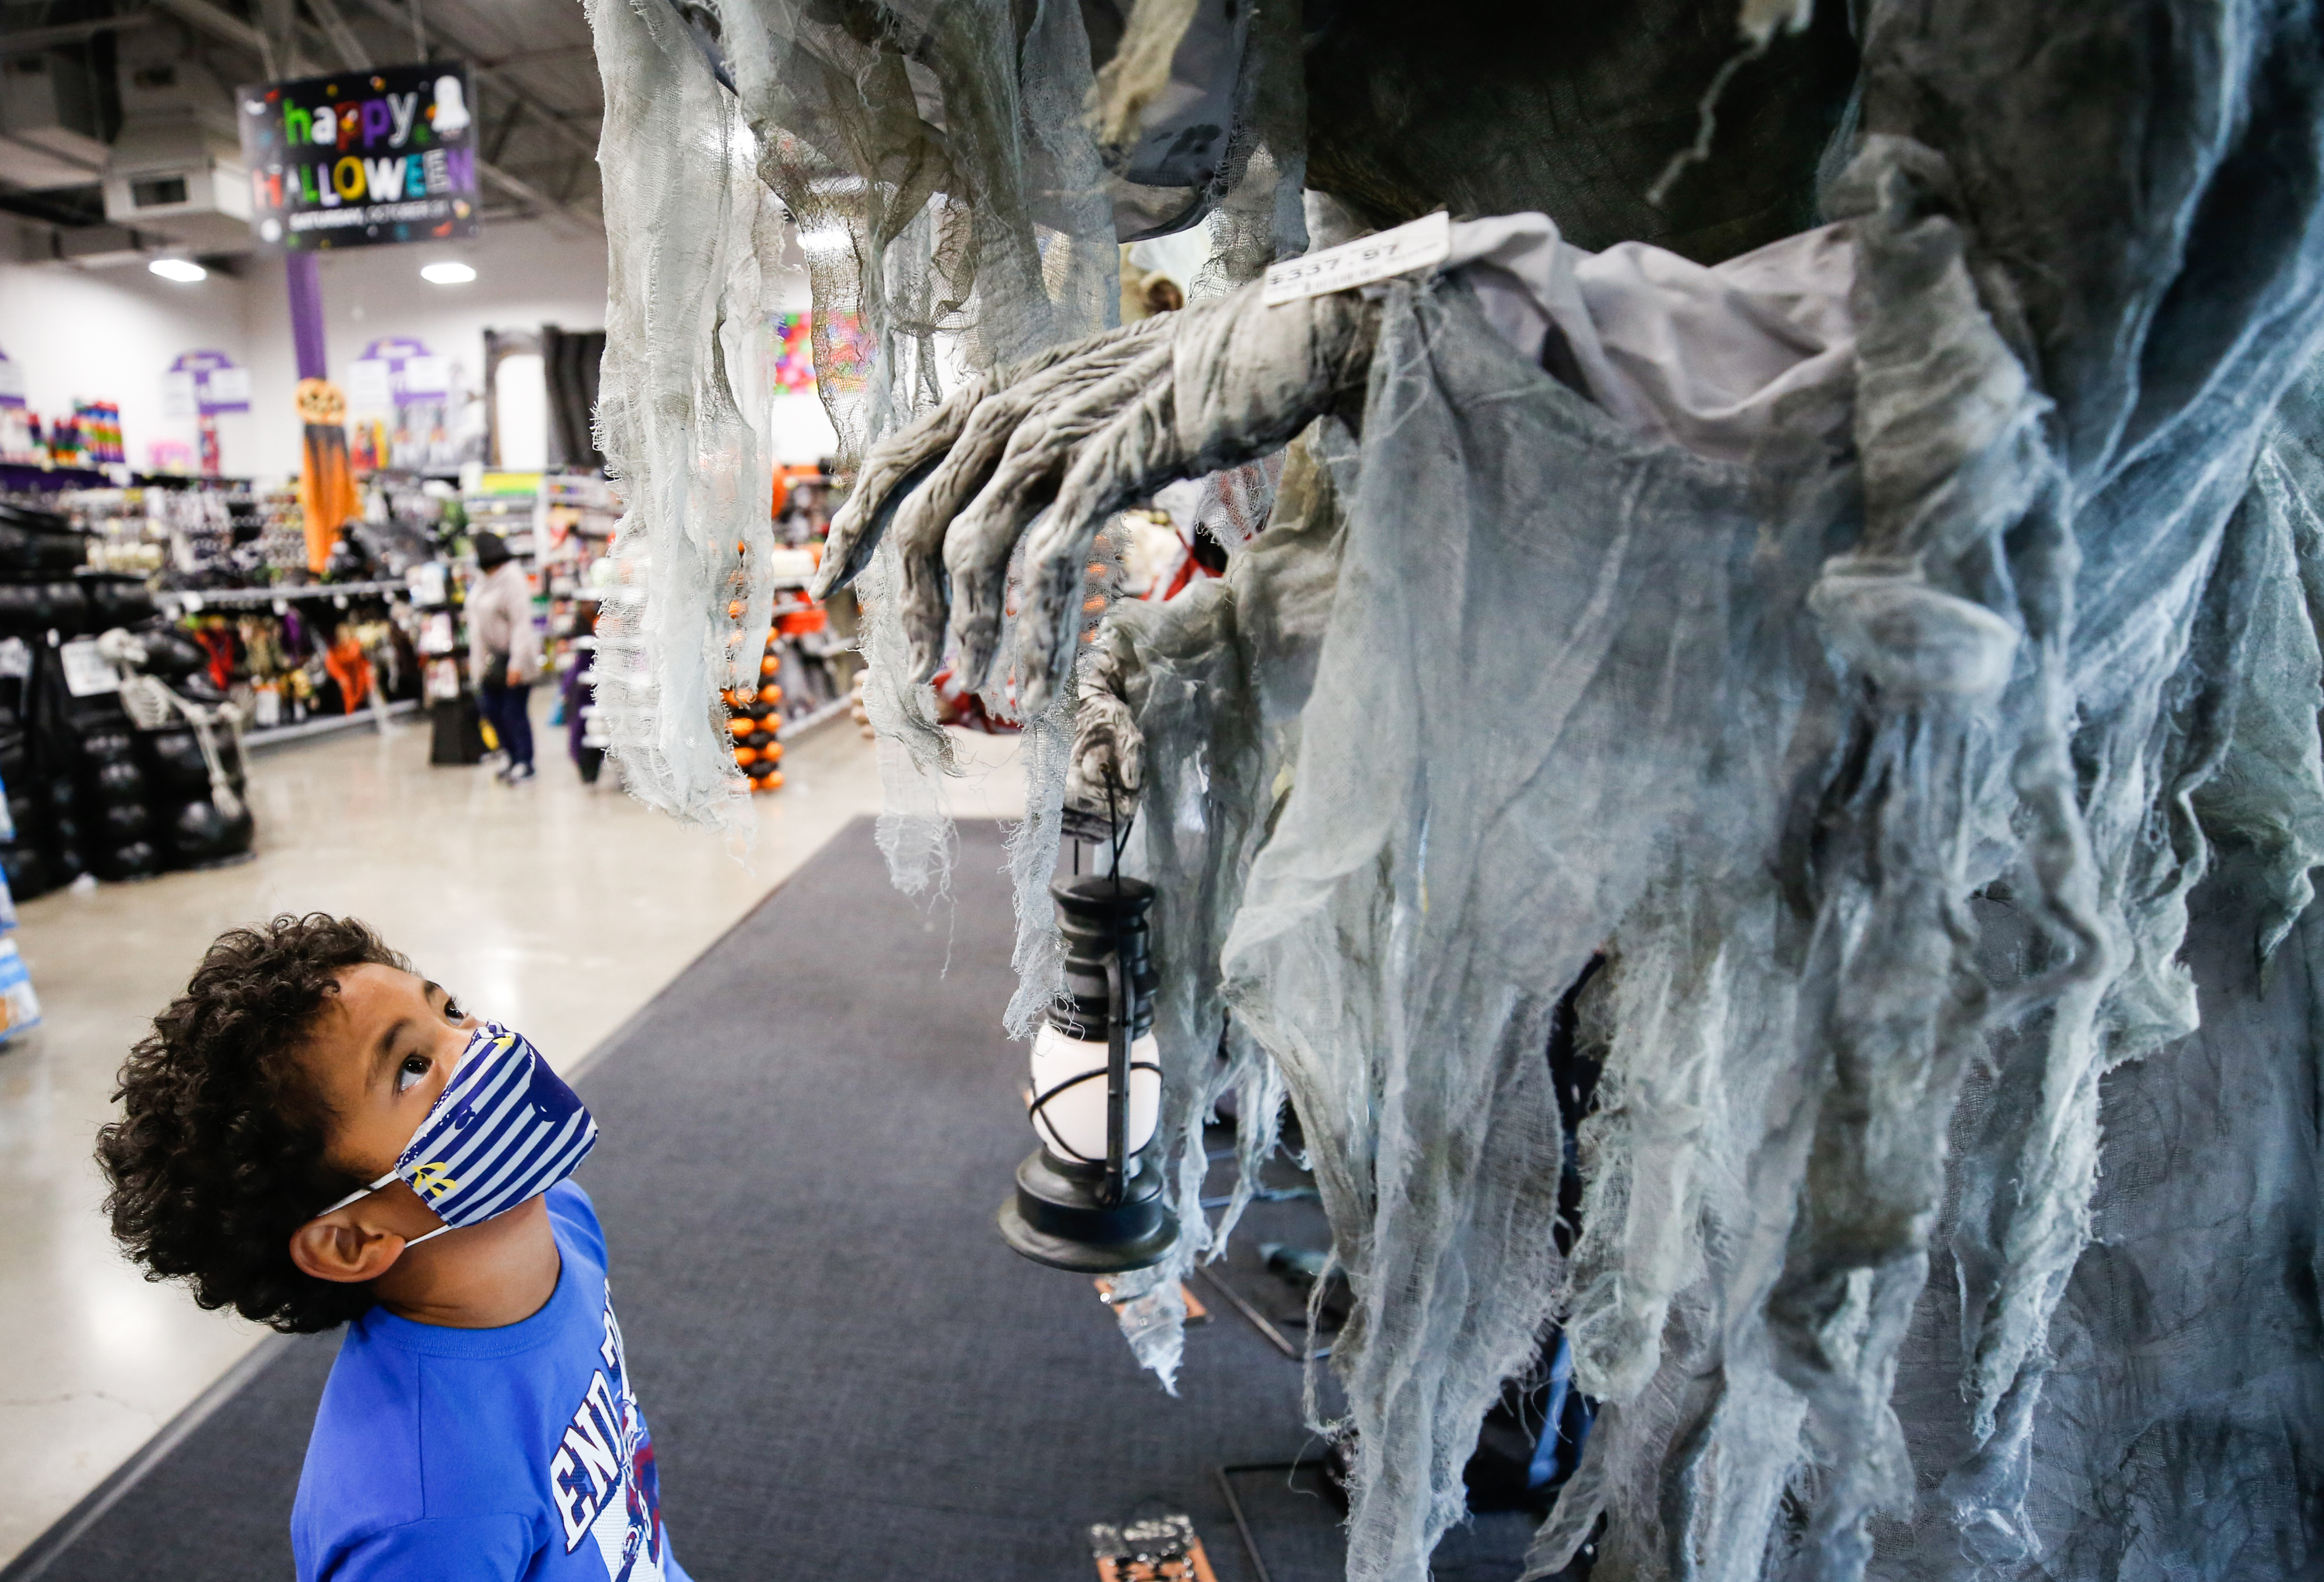 Shane Manu, 6, looks at a Halloween decoration at Zurchers, a costume and party supply store, in Salt Lake City on Friday, Oct. 16, 2020.